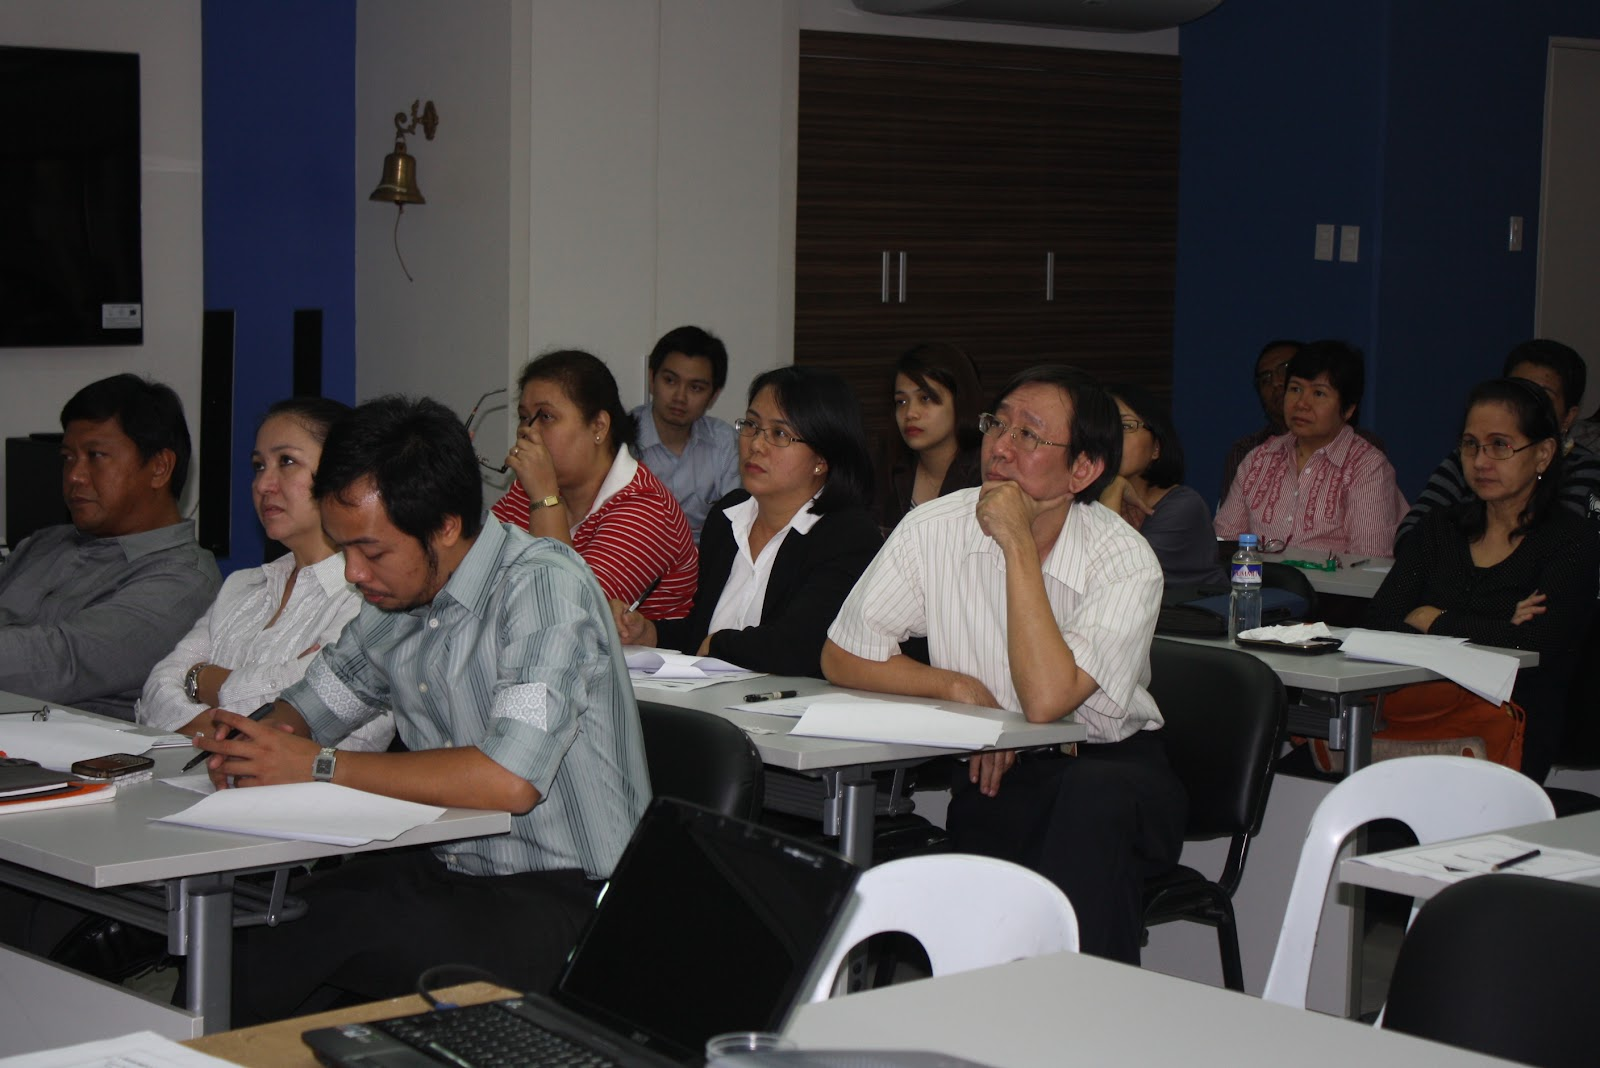 Financial Literacy Seminar: The Risks of Investing - March 11, 2011 (Training Room, ACI-MART Office)